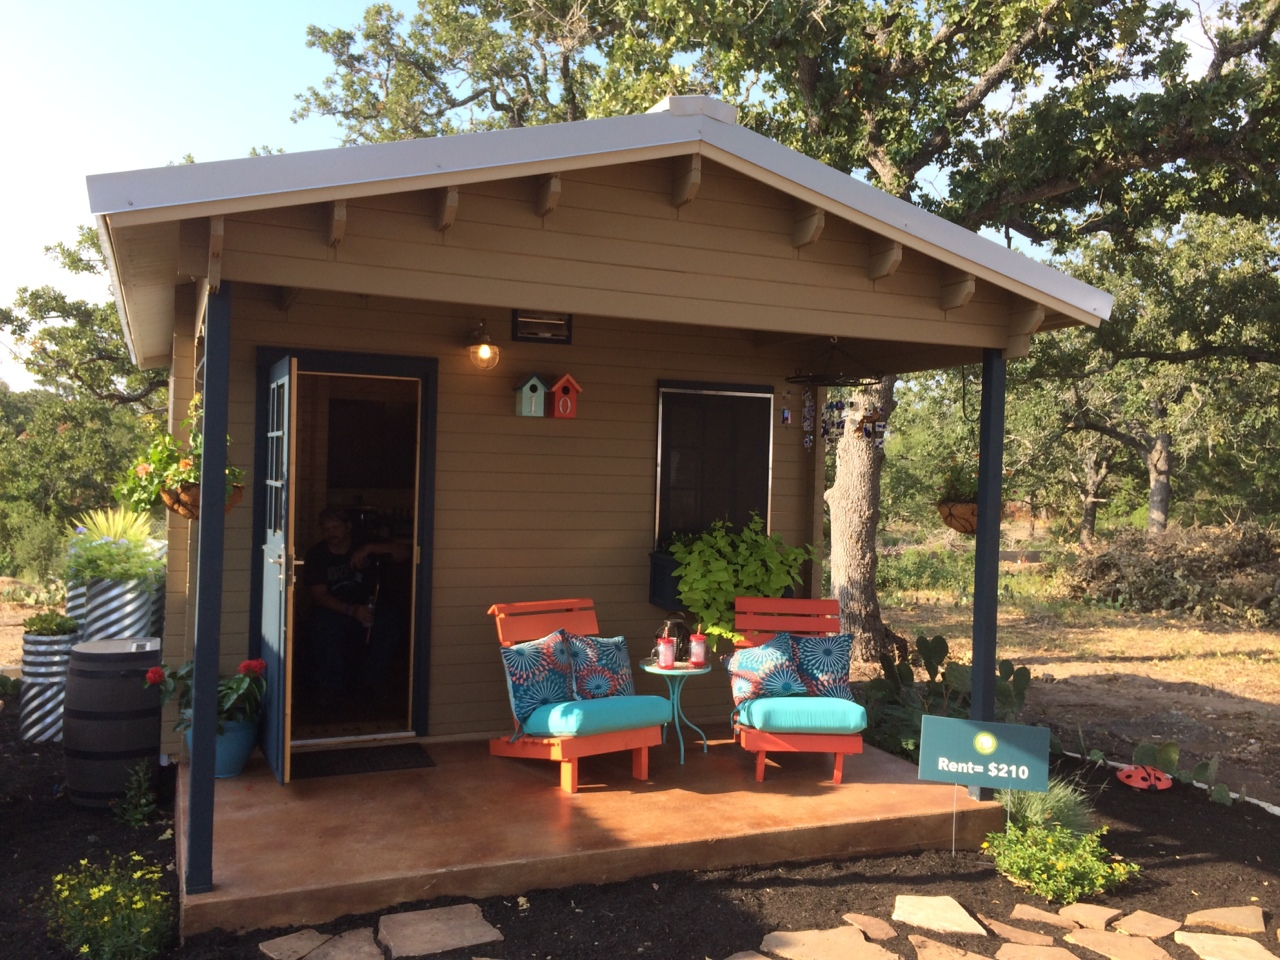 Tiny Homes Will Not End Homelessness